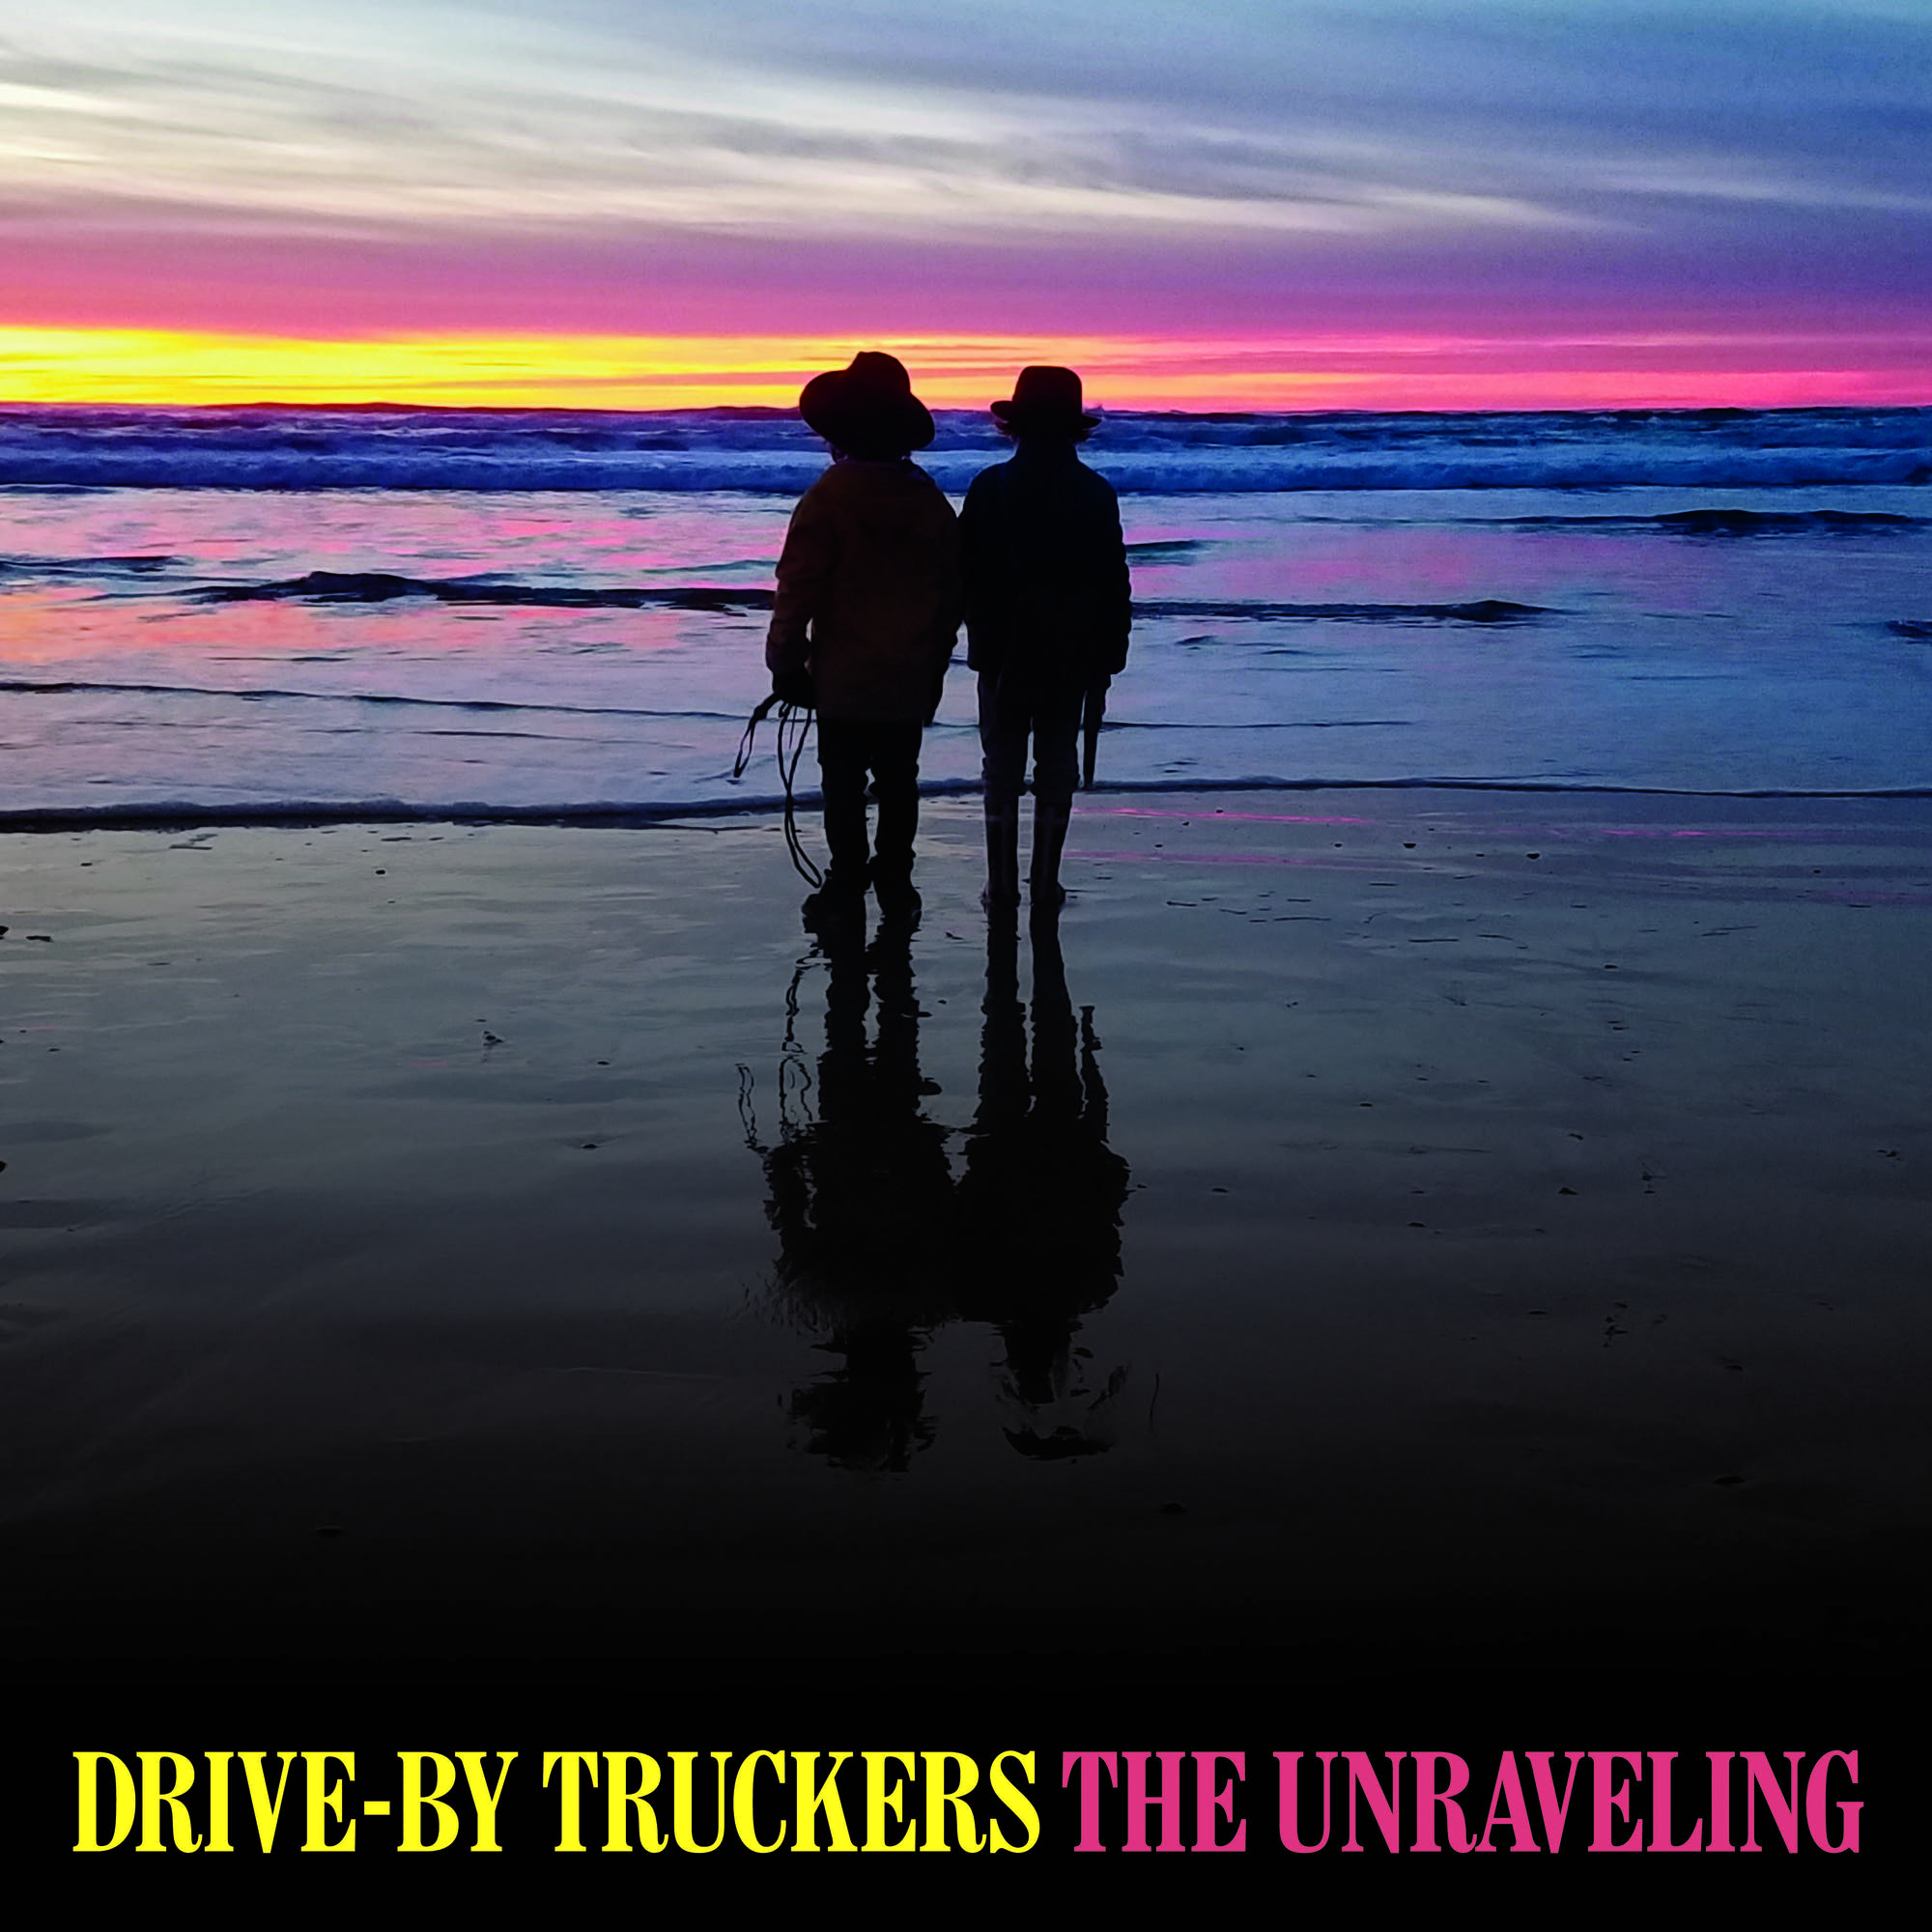 Drive-By Truckers, 'The Unraveling'